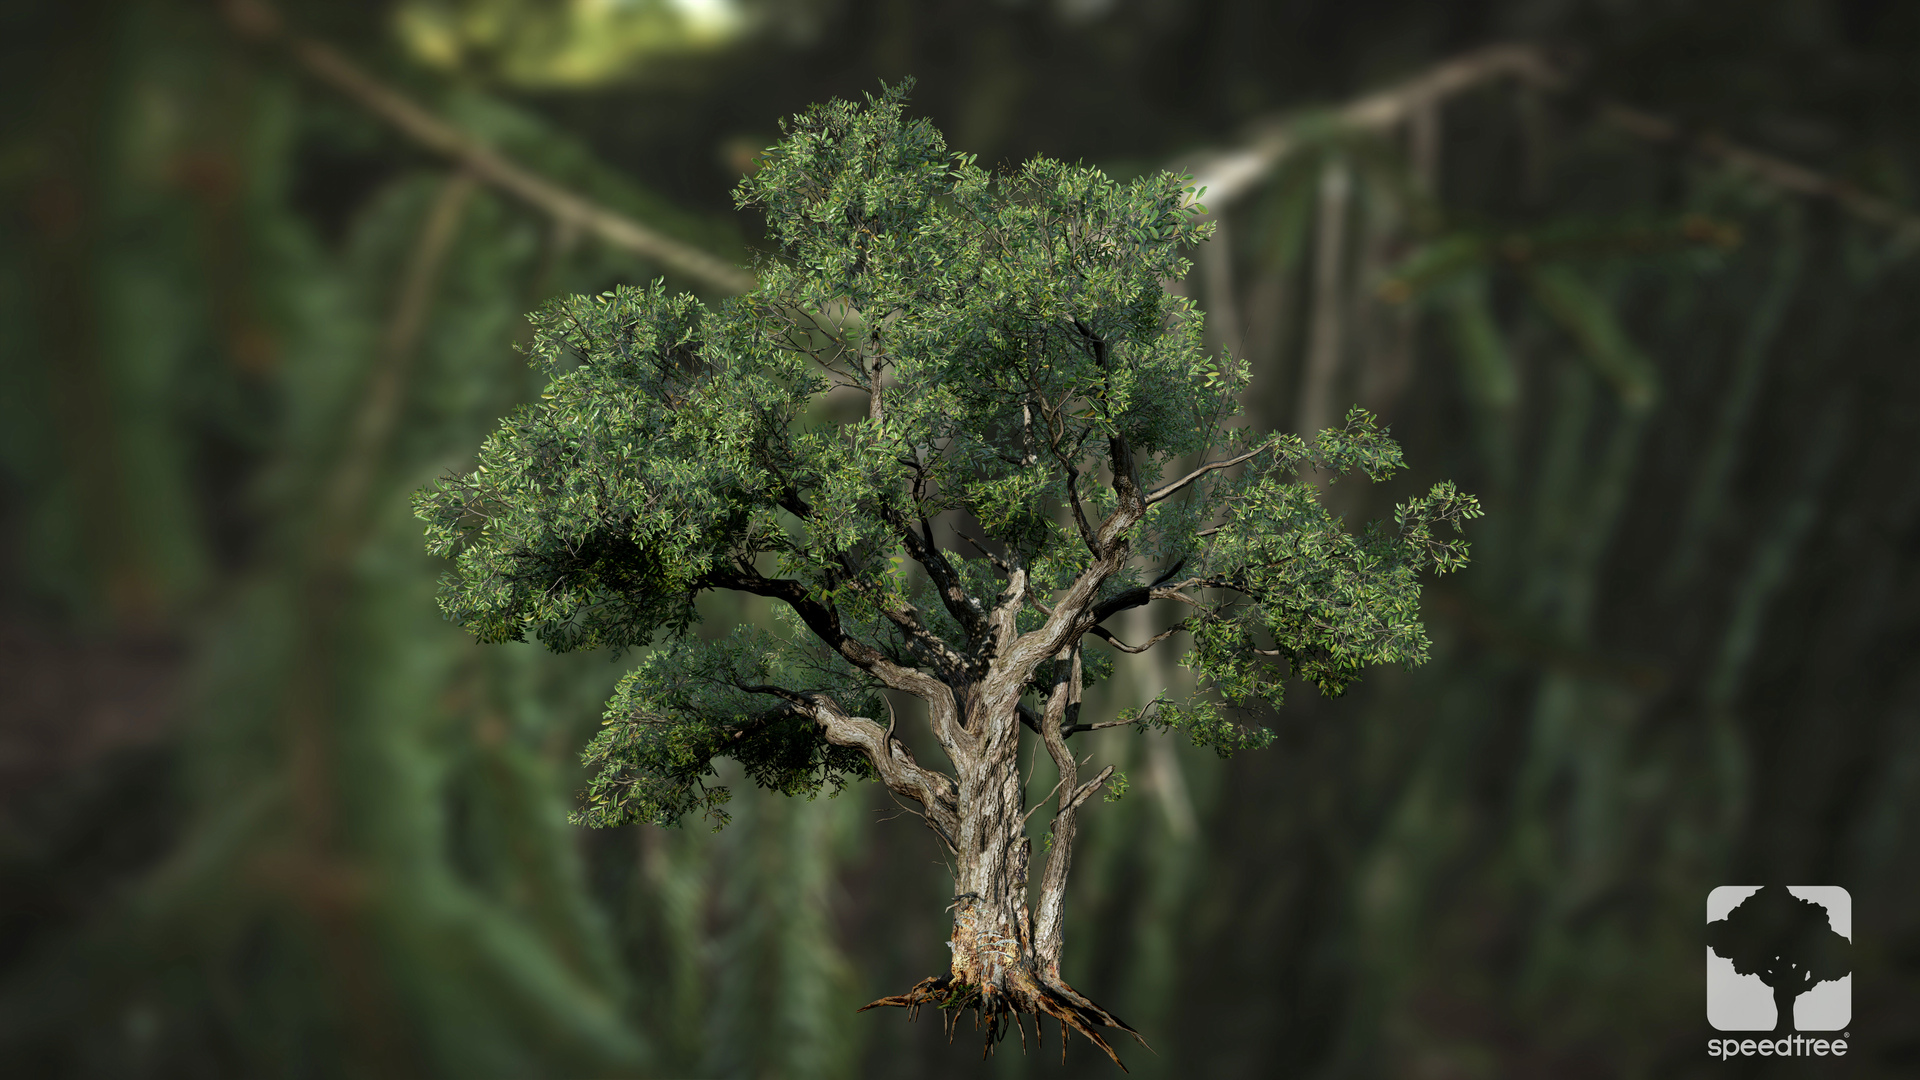 First screenshots for SpeedTree 8 in Amazon's Lumberyard